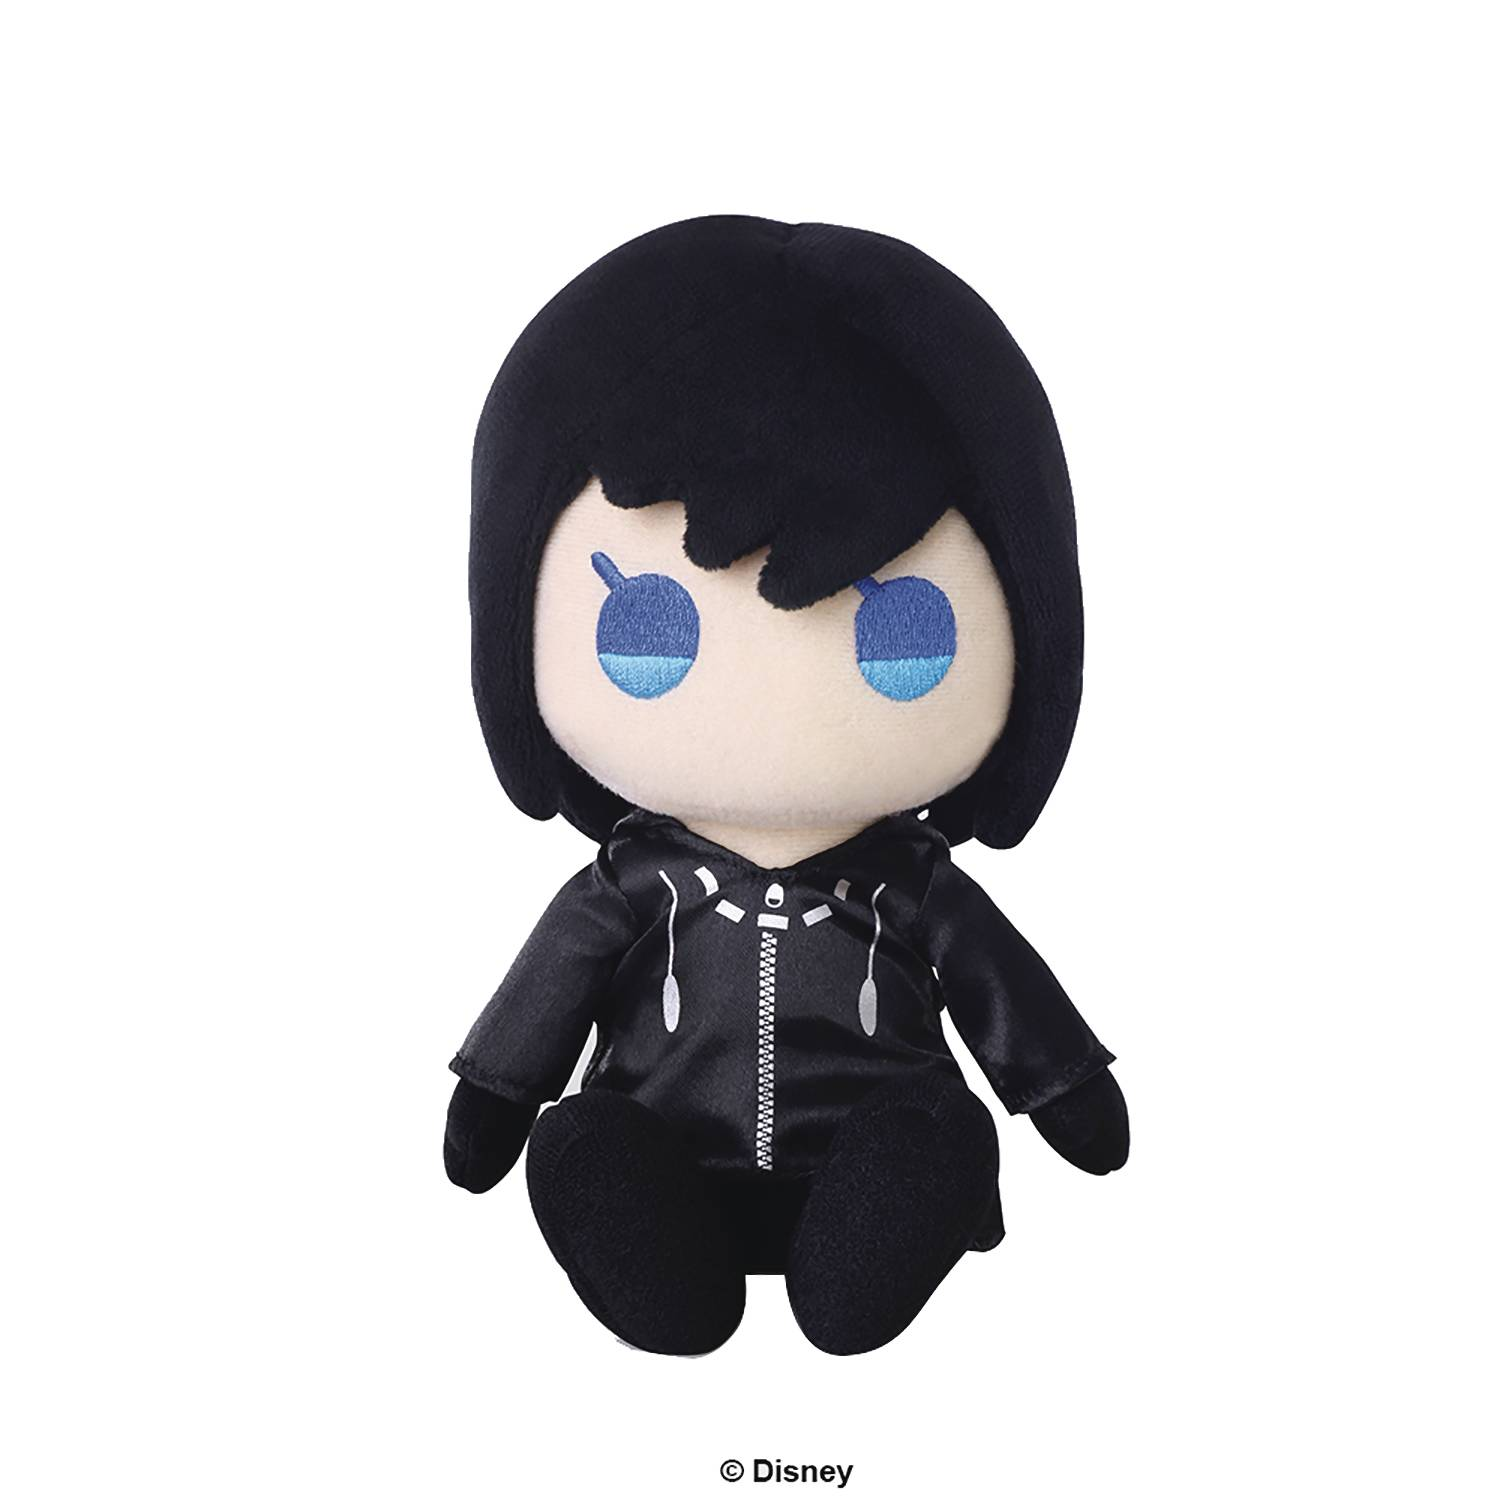 KINGDOM HEARTS III XION PLUSH